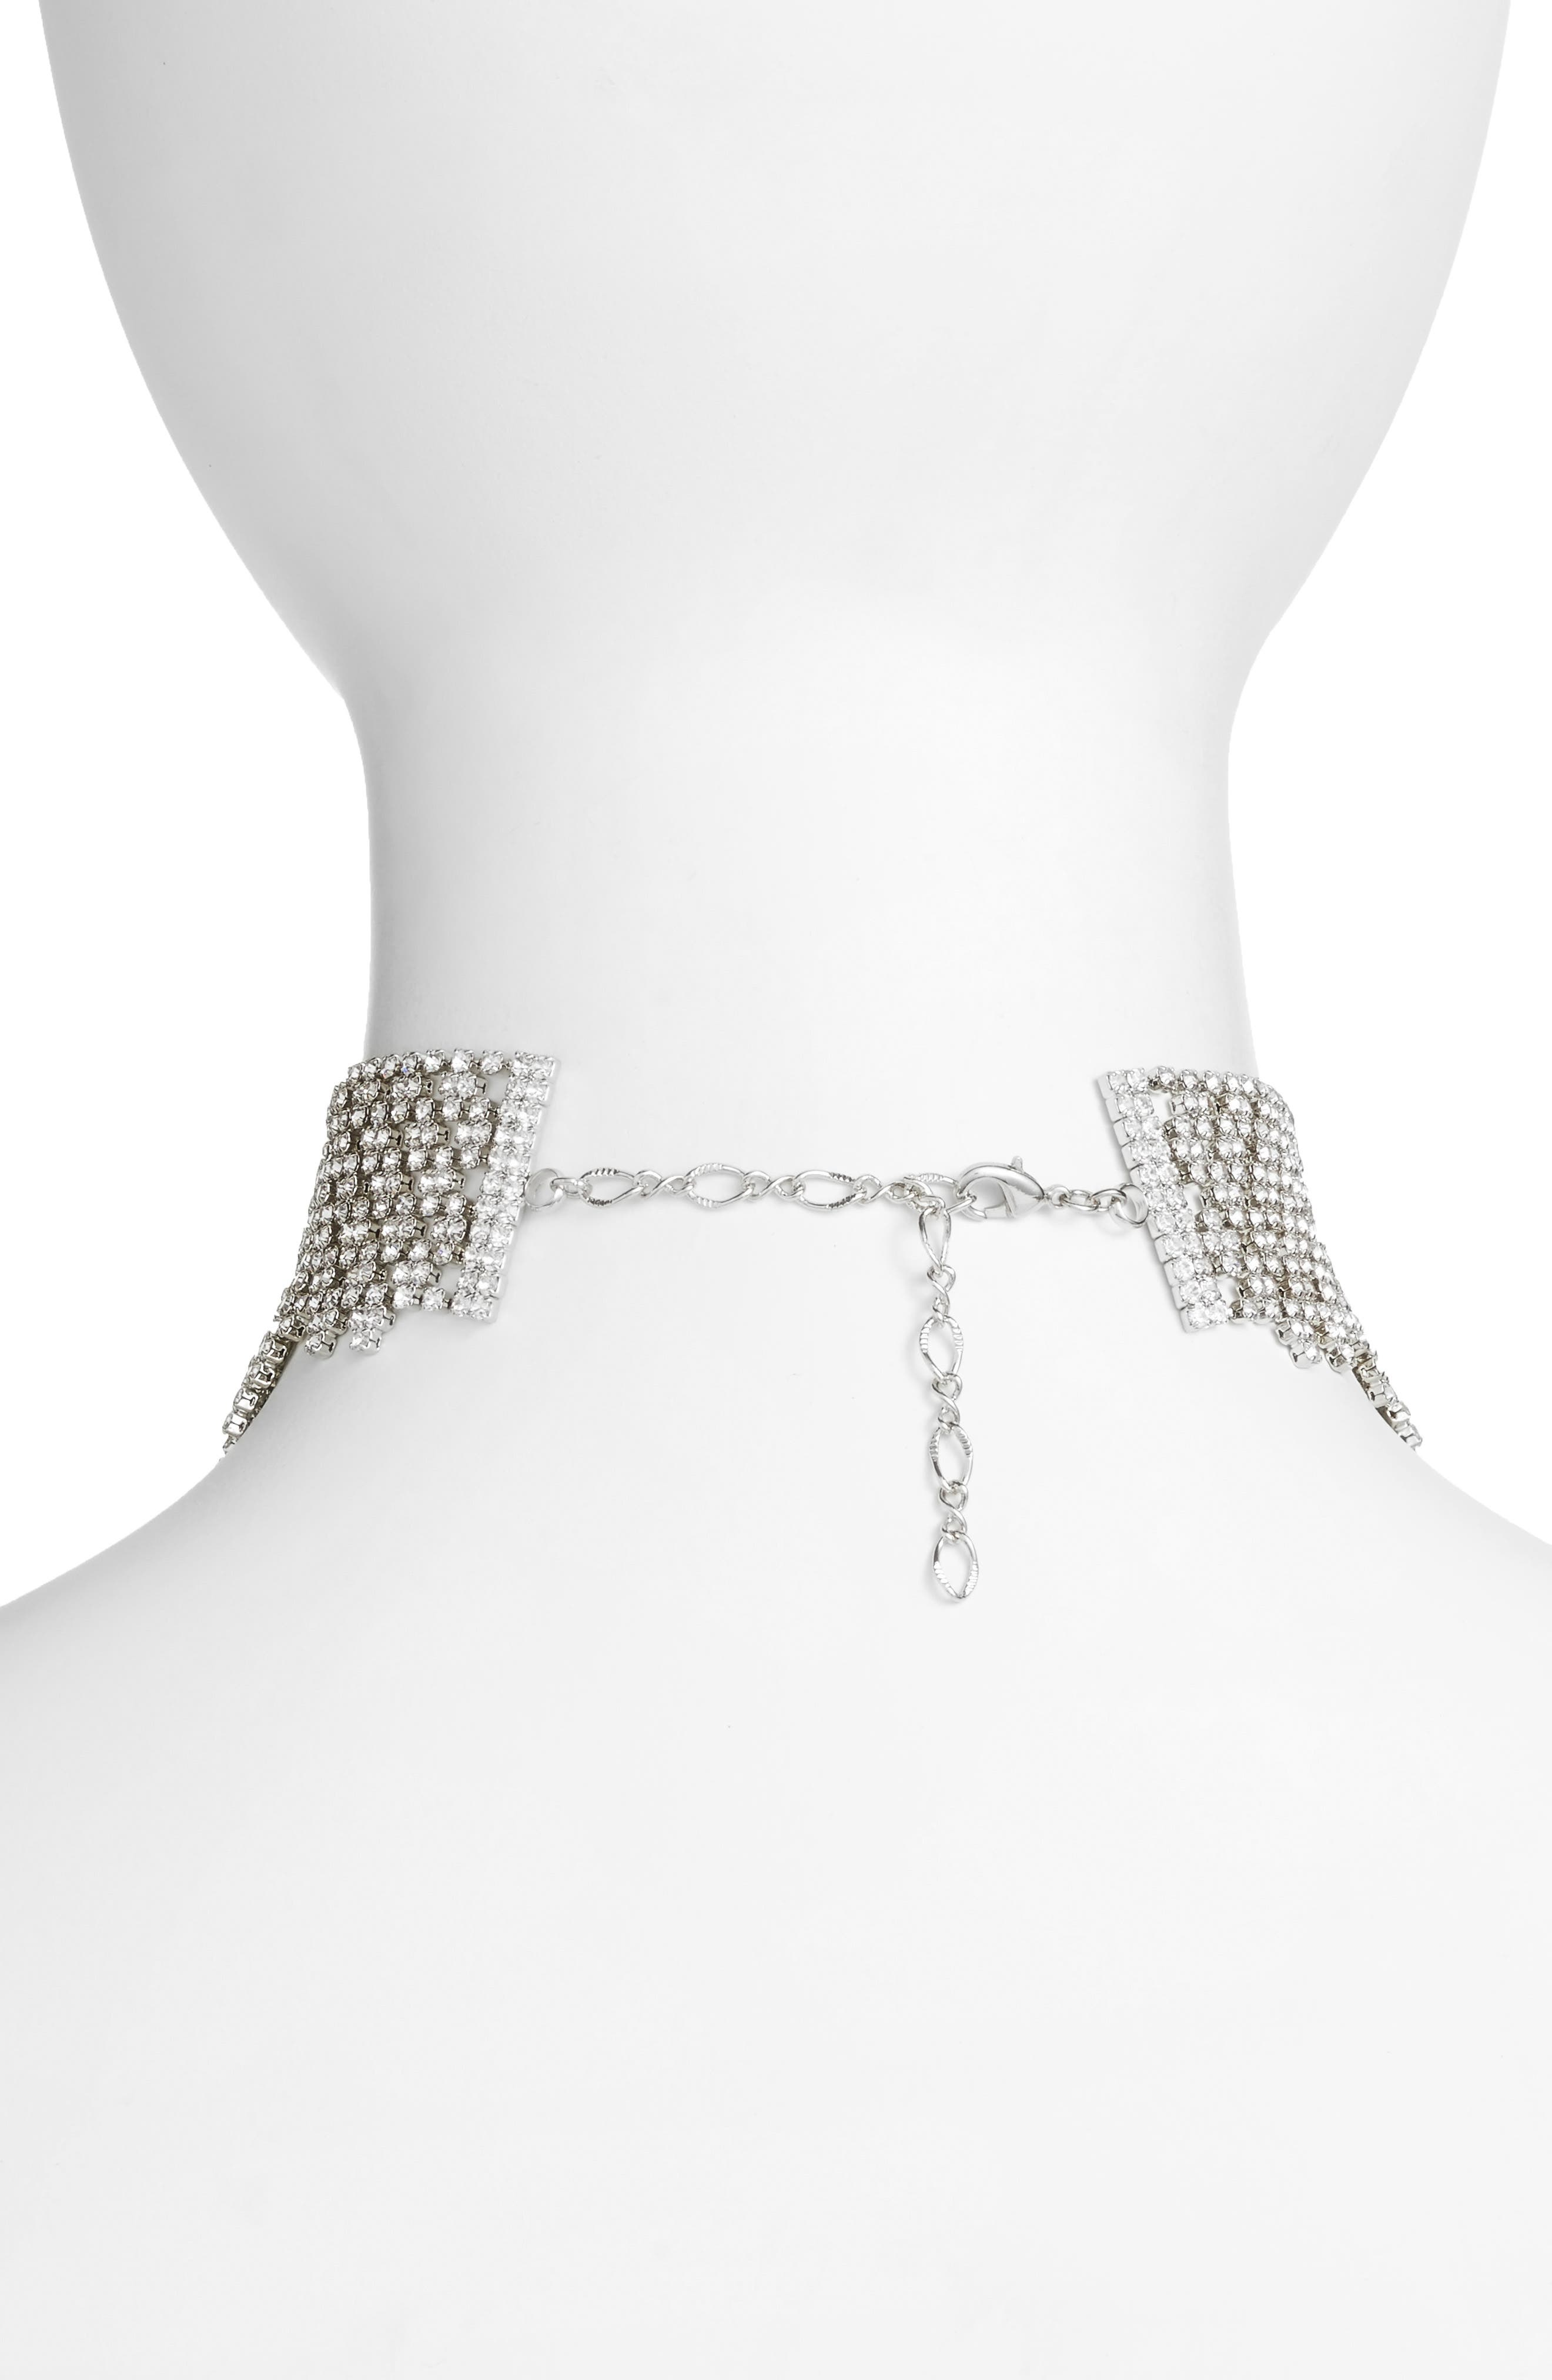 Graduated Crystal Choker,                             Alternate thumbnail 2, color,                             Clear / Silver